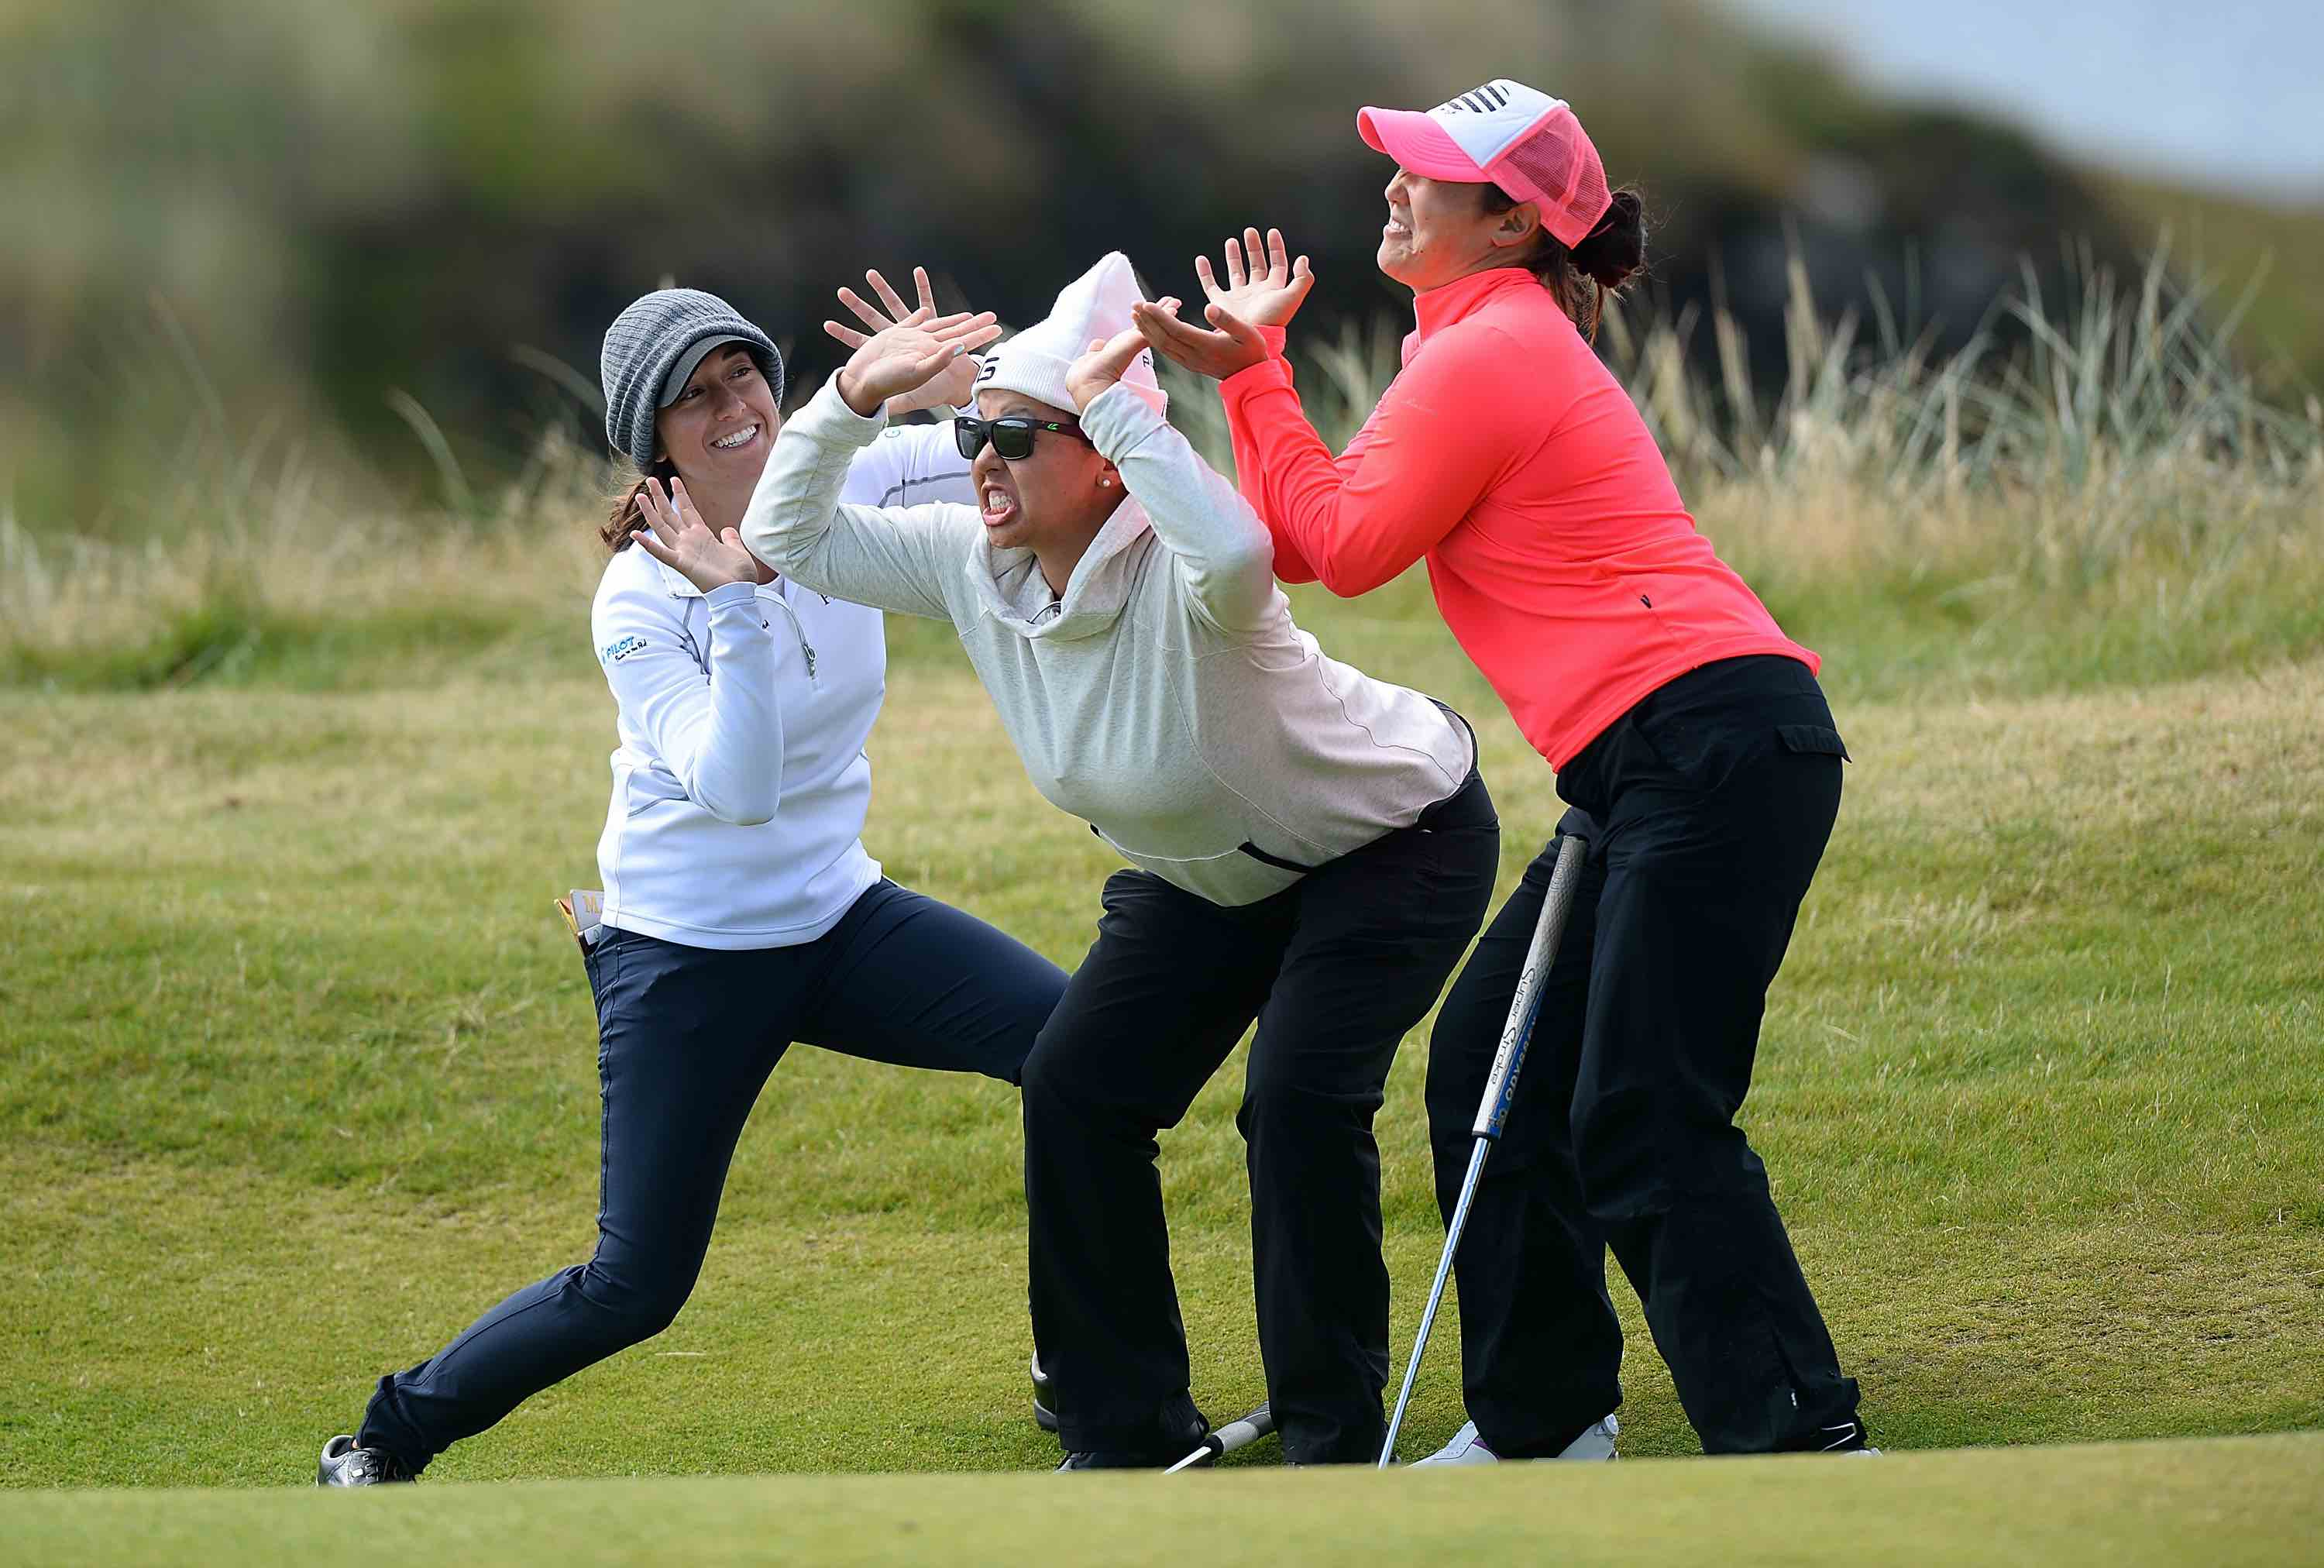 Ricoh Women's British Open Tee Times